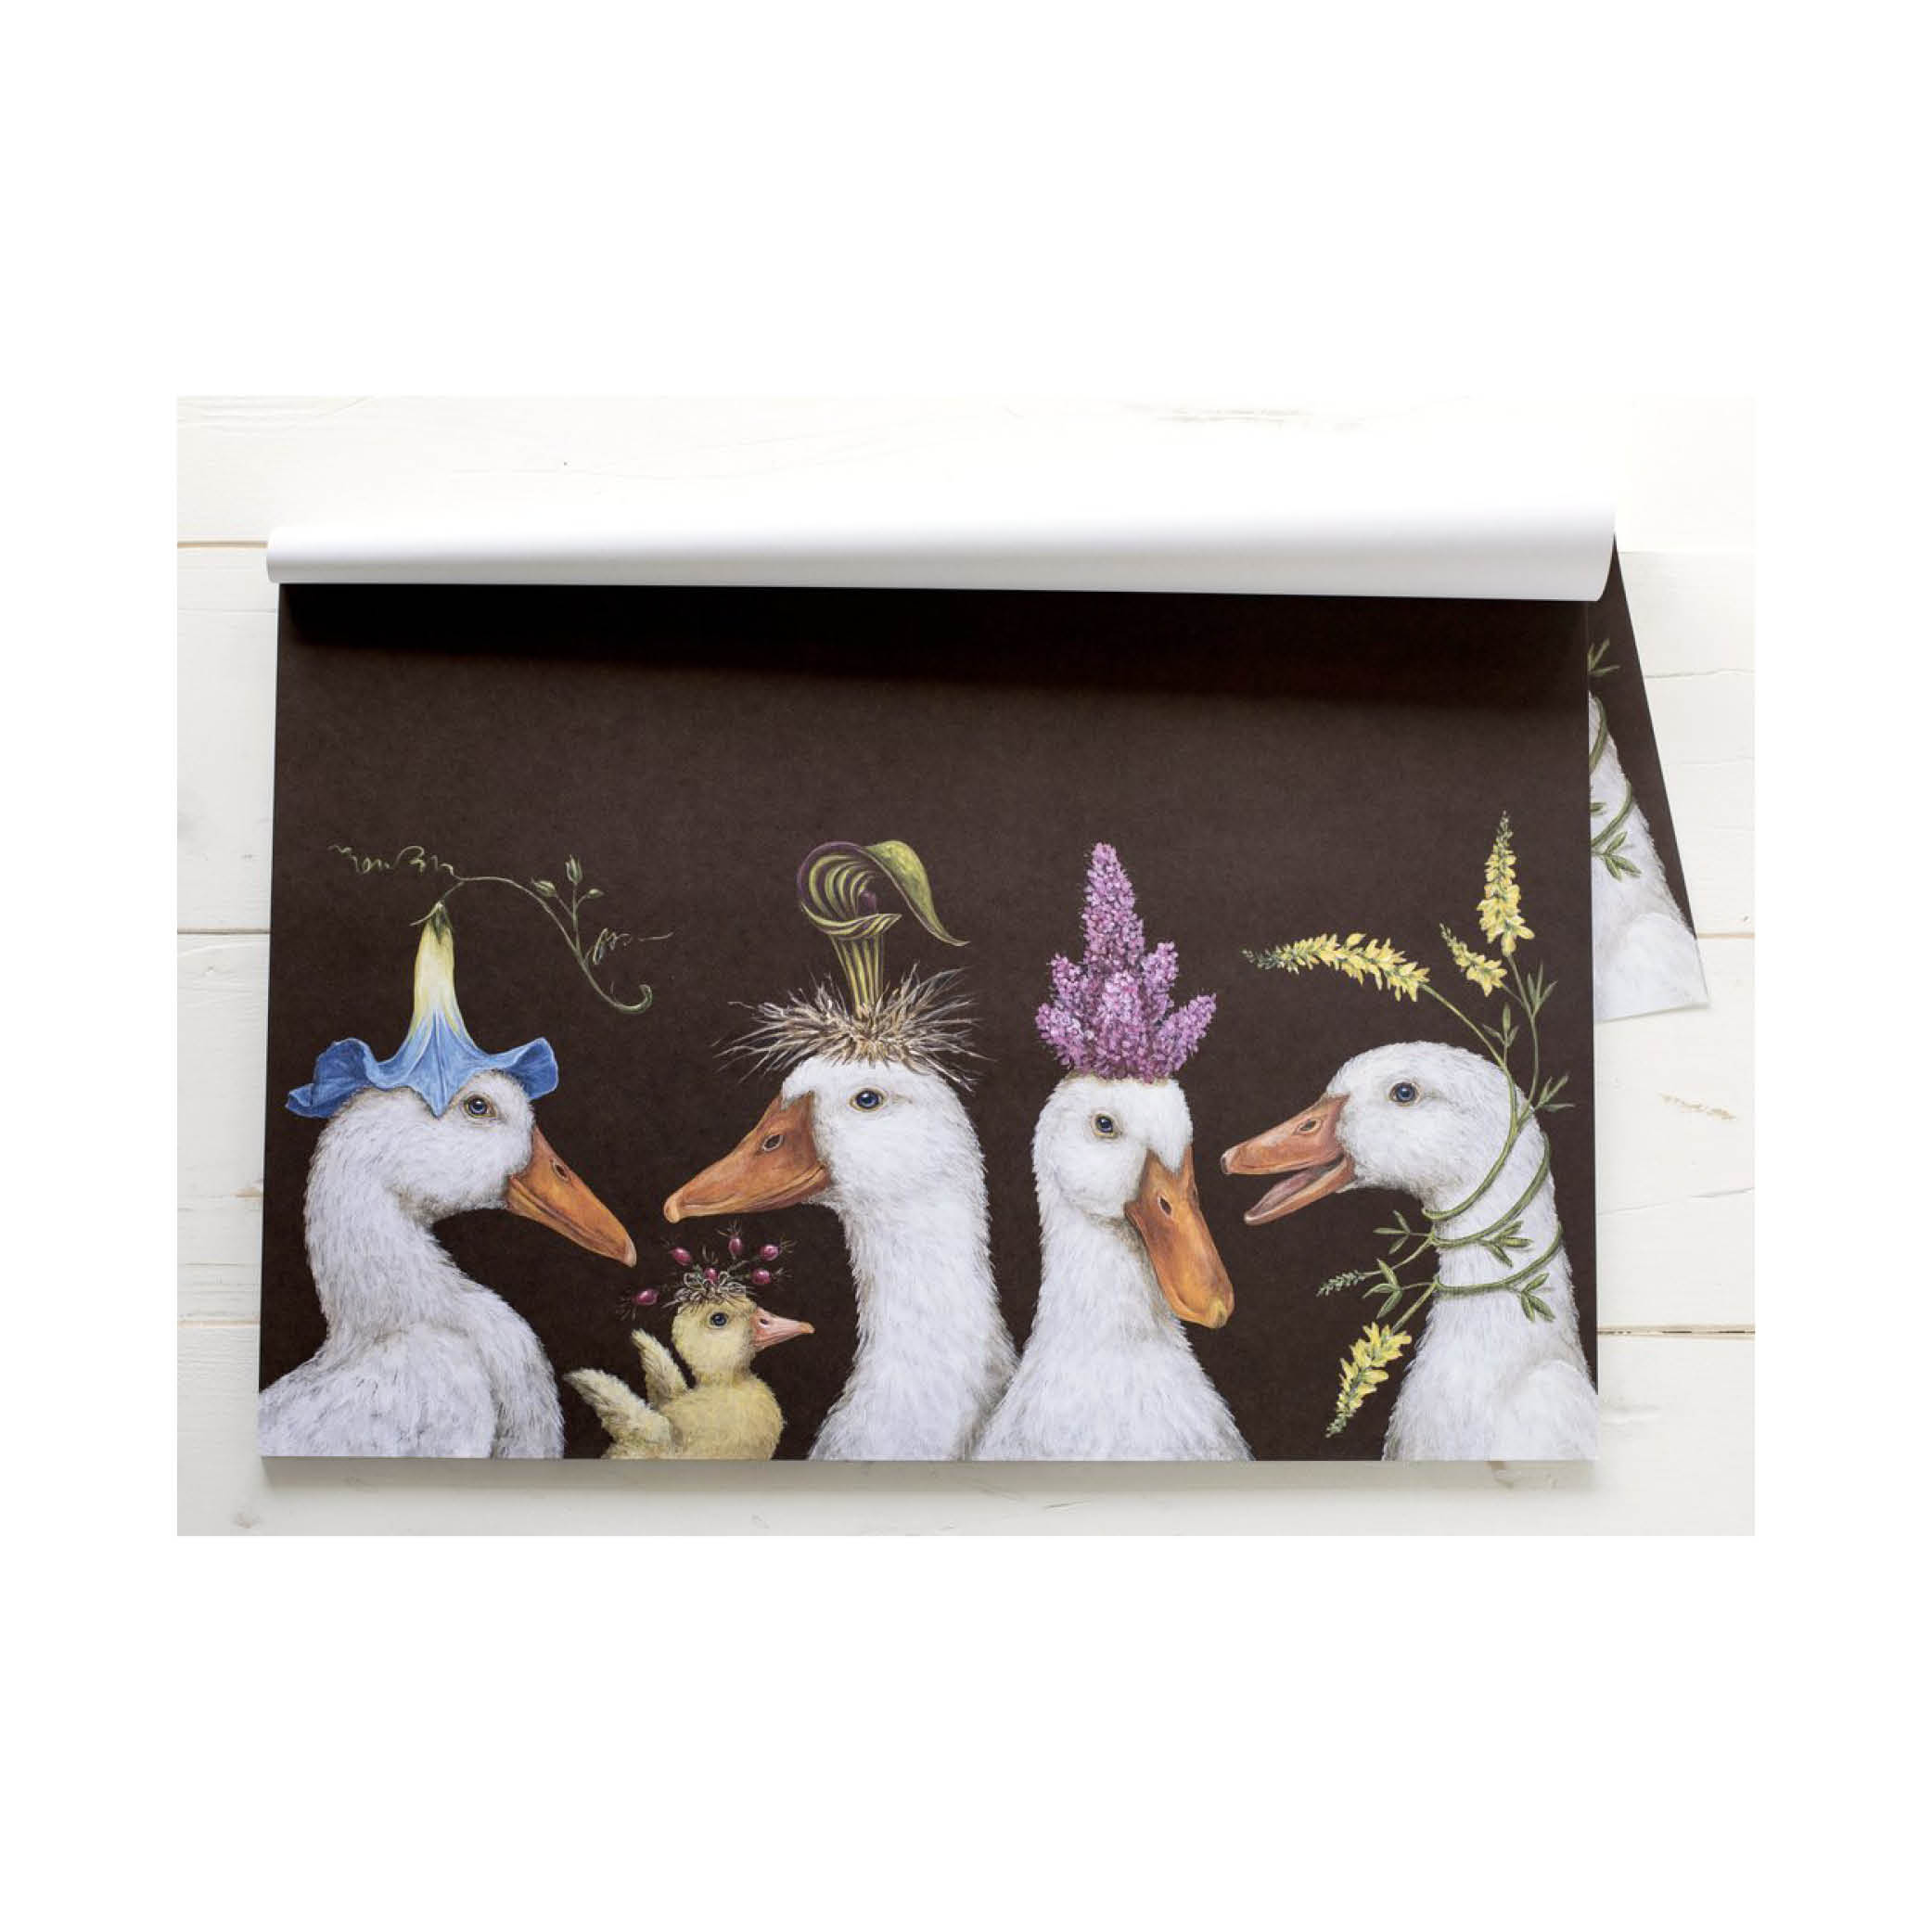 Kitchen Papers, Ducks $27.95   Wants 1 Has 0 Needs 1